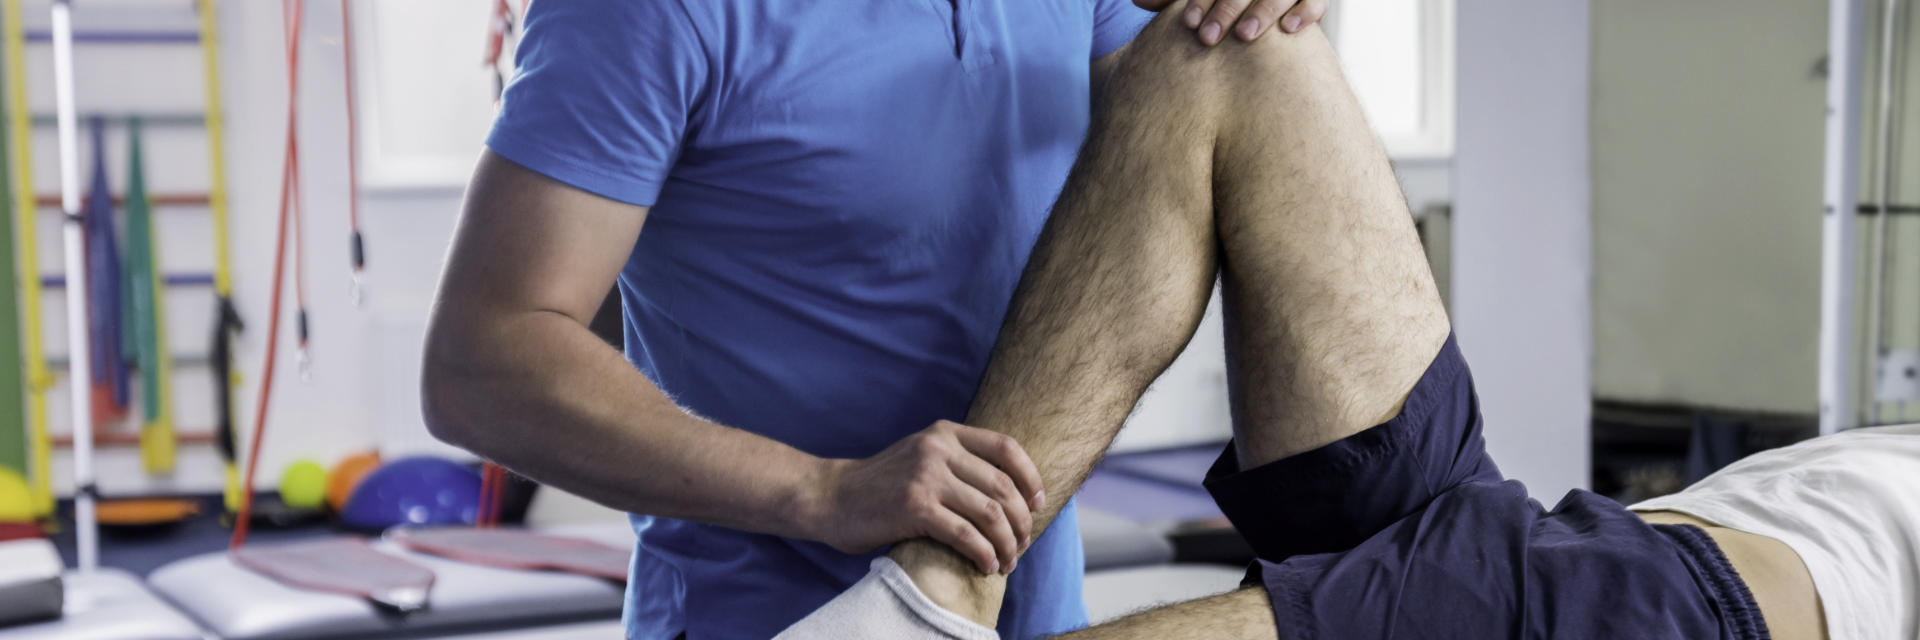 An orthopedic specialist examining patient's knee.